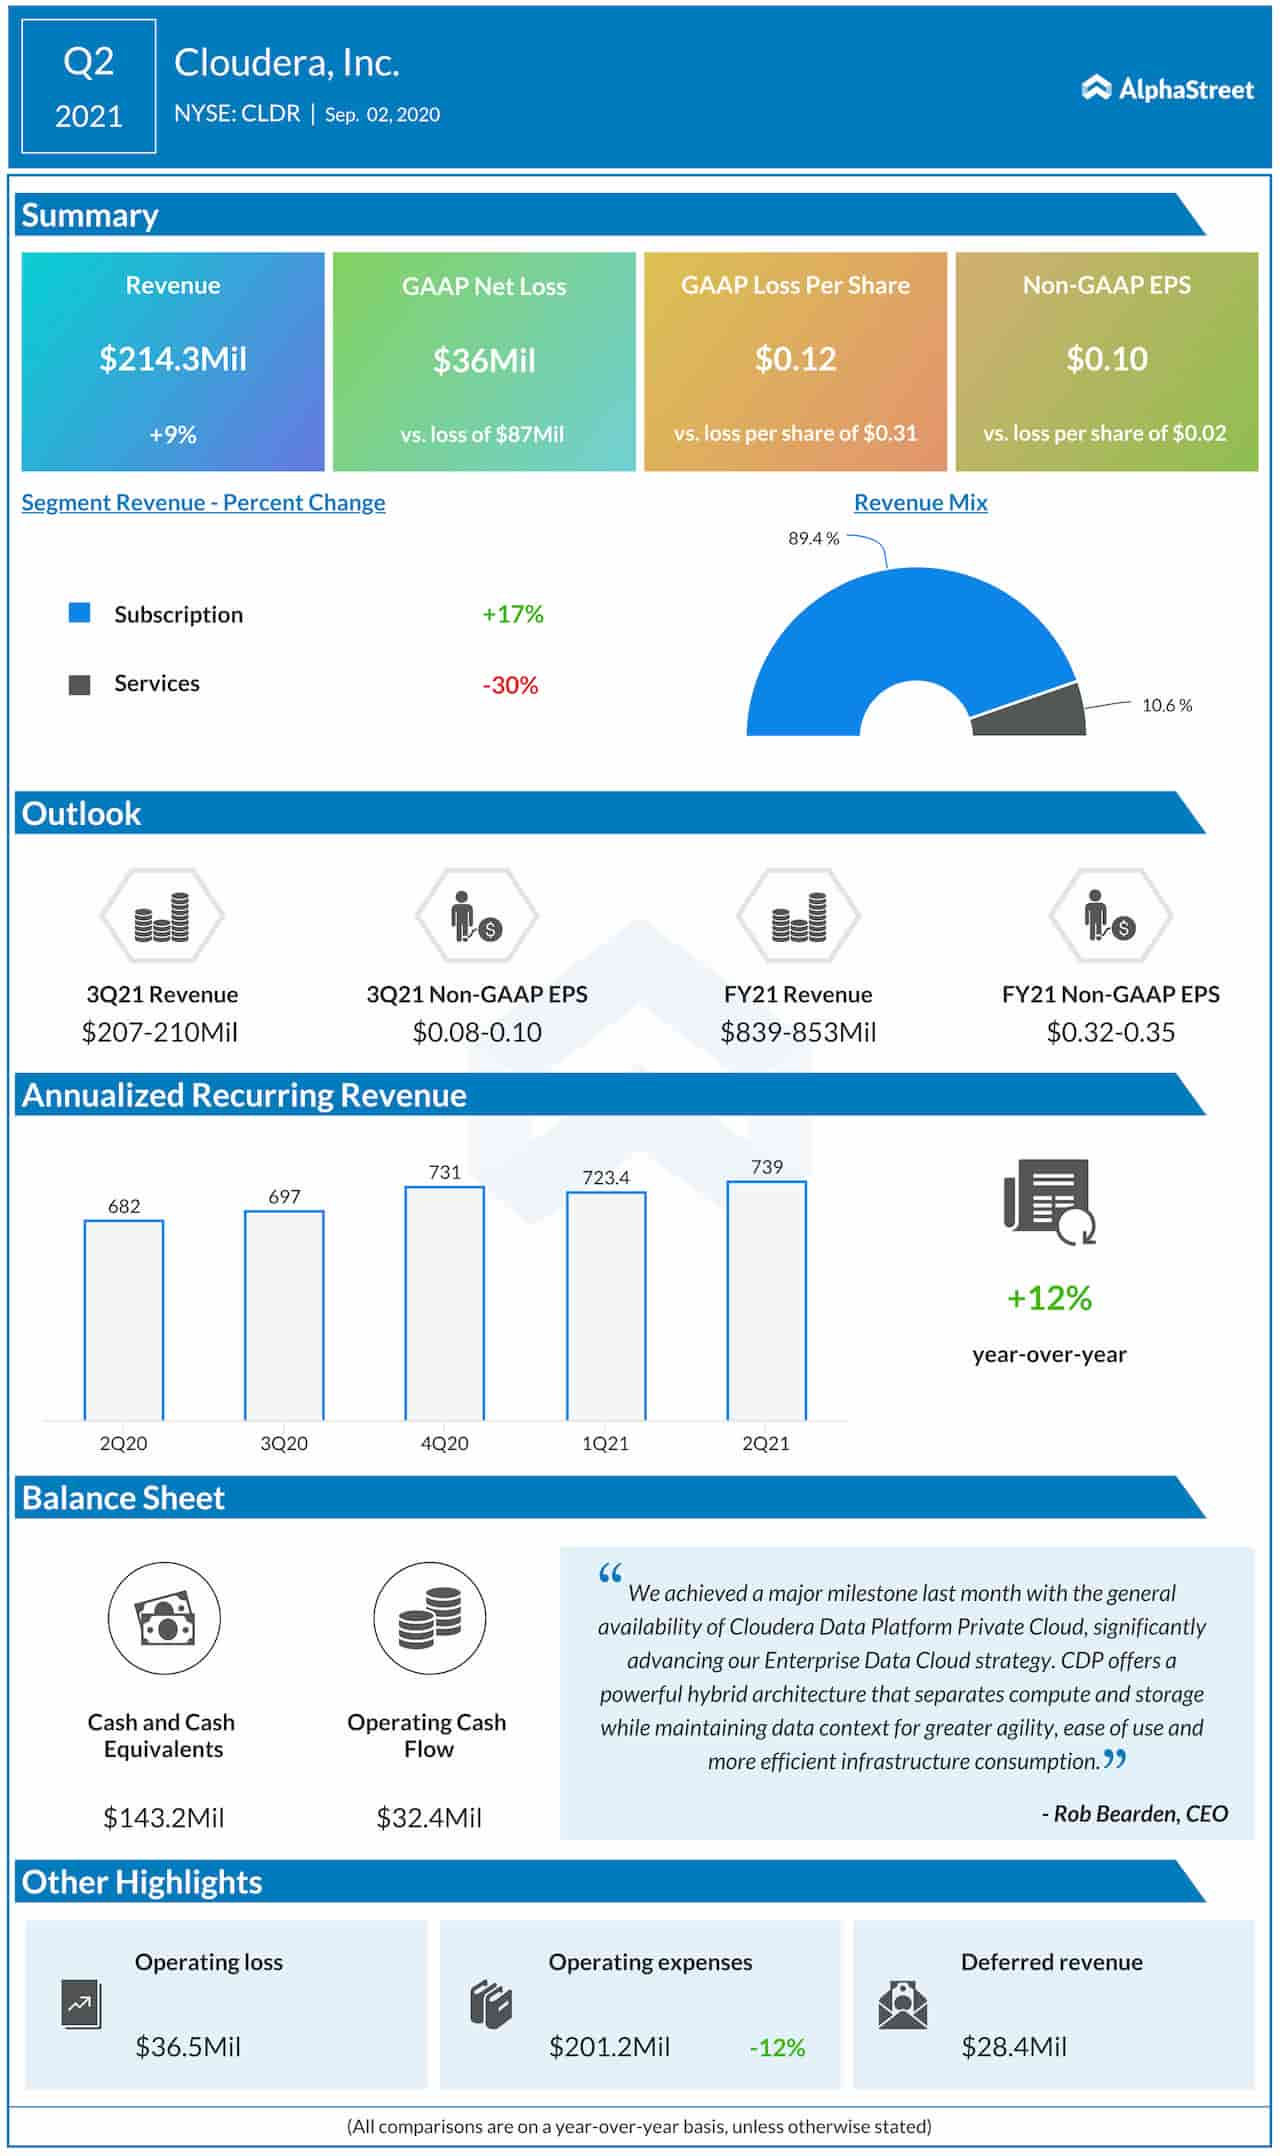 Cloudera-Q2-2021-earnings-infographic